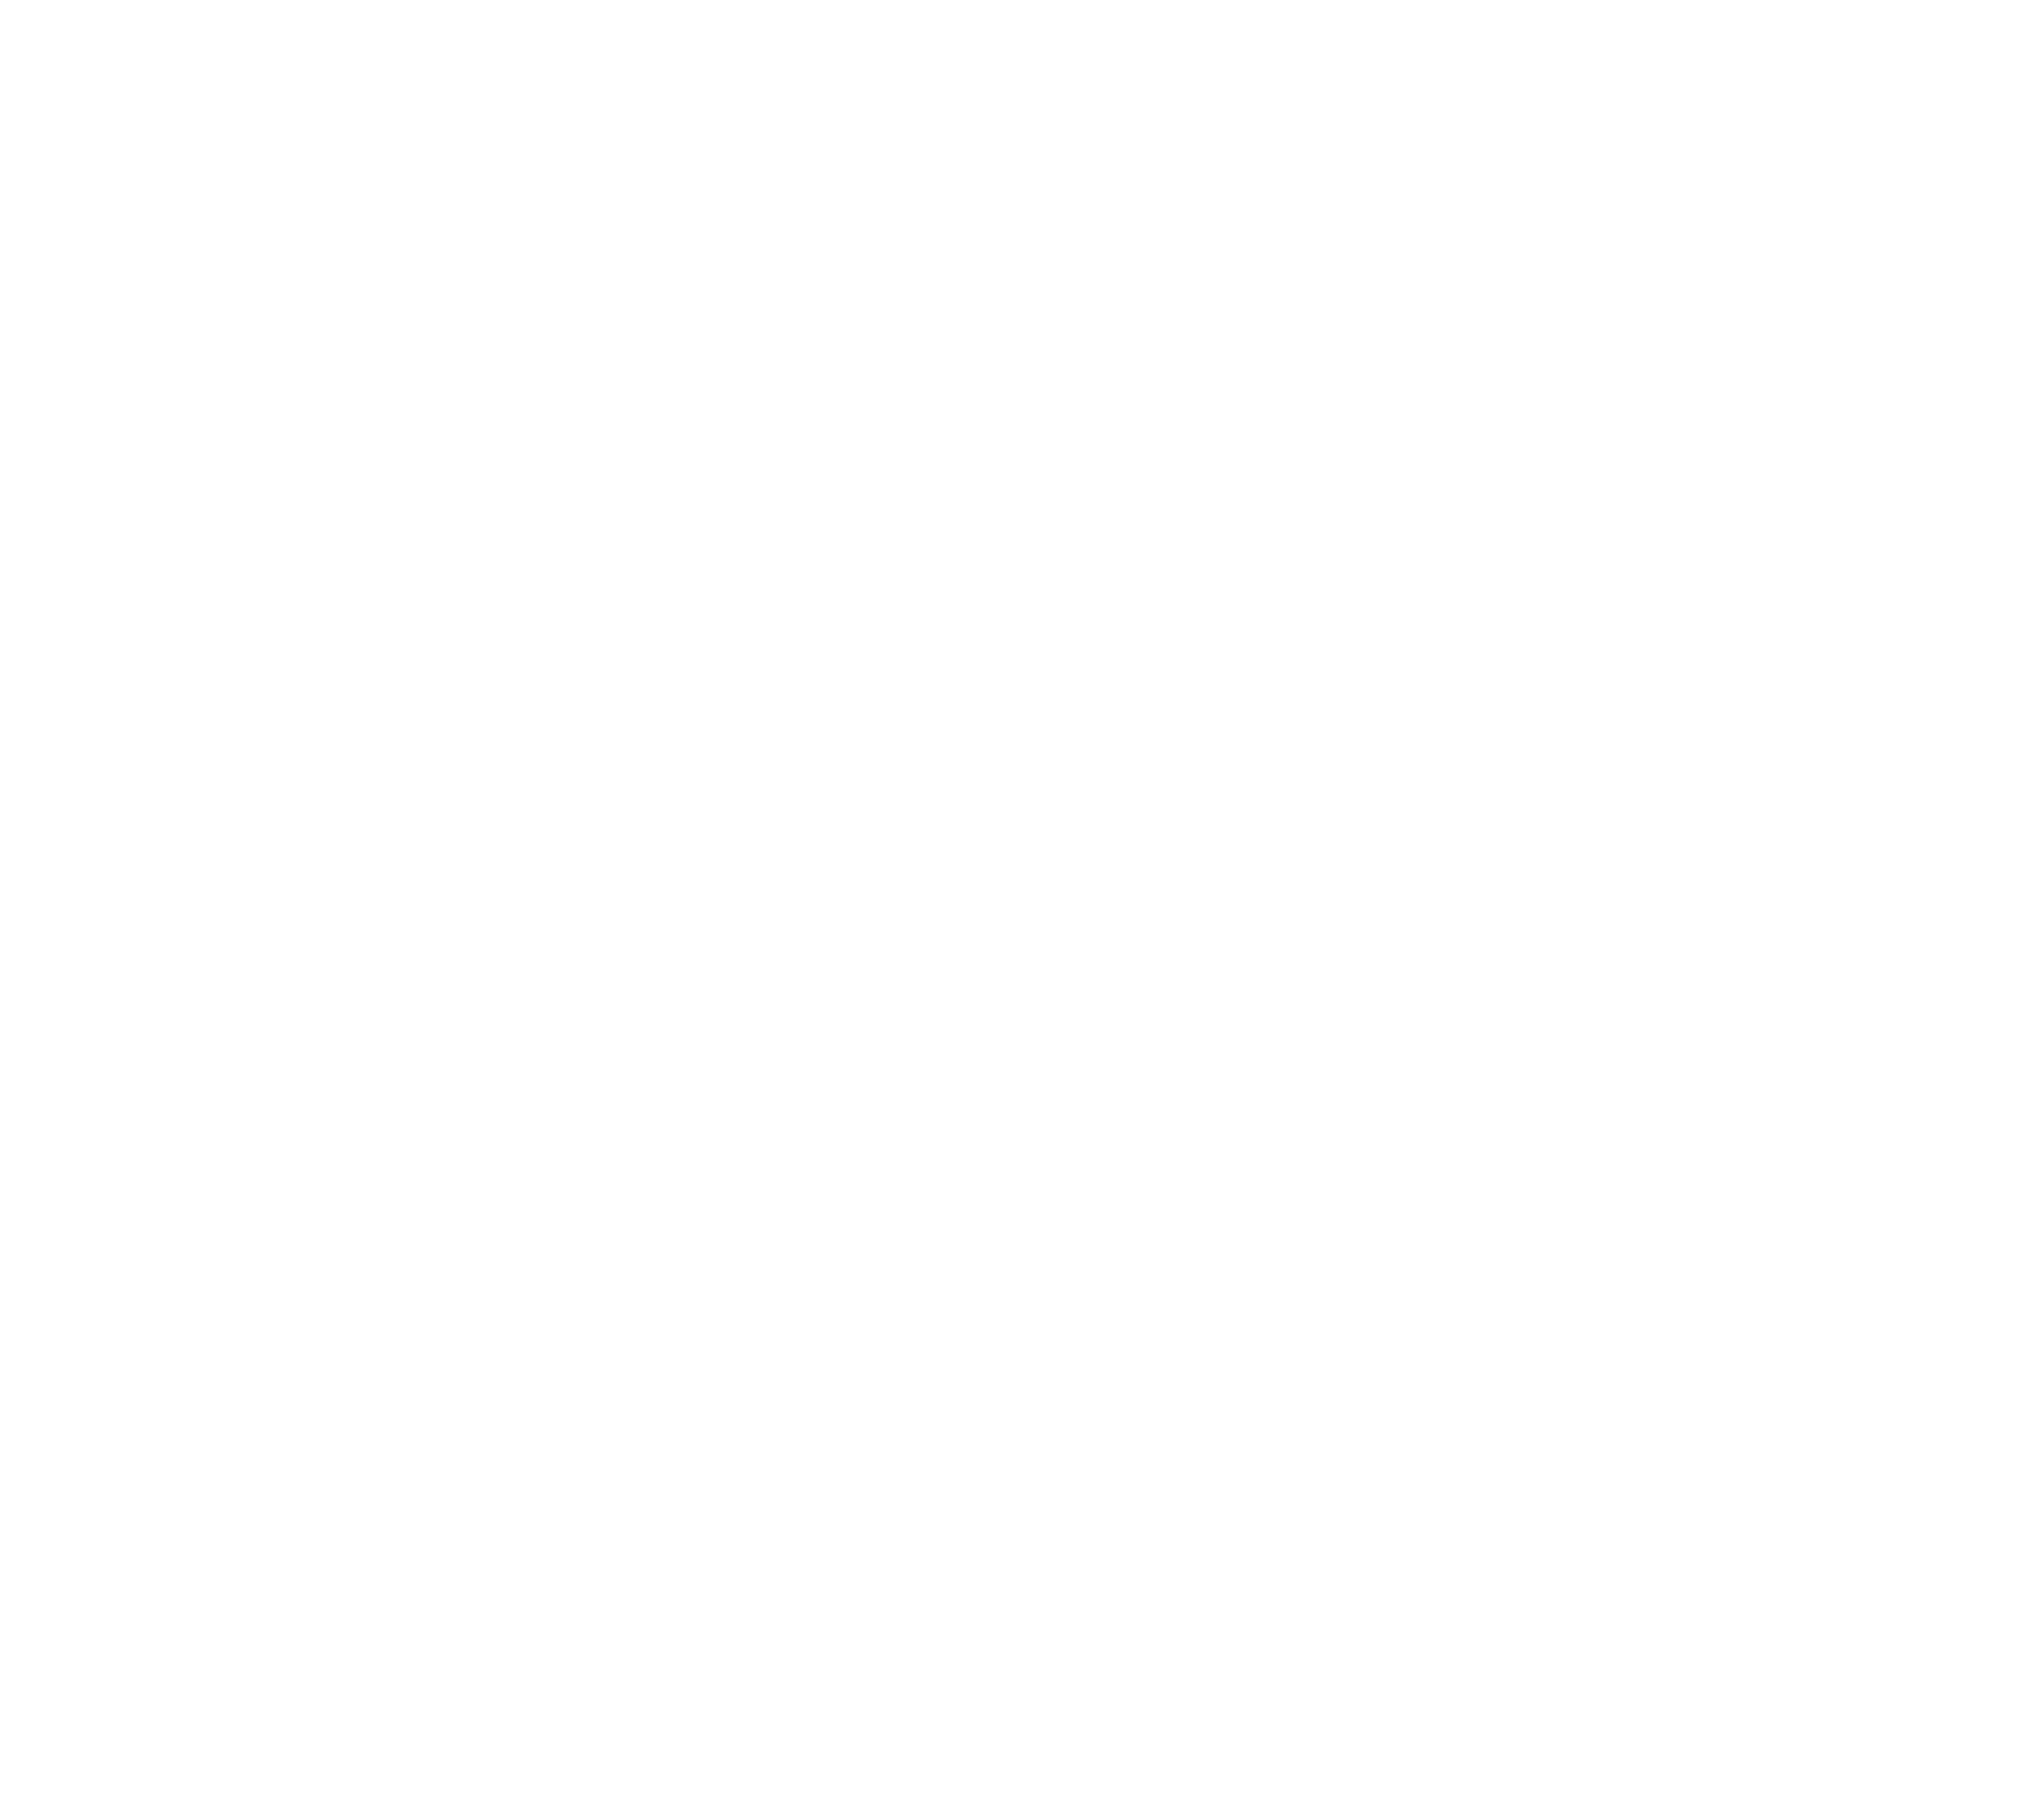 Smith & Sylvan Creatives | Branding & Design Studio, N. Riverdale, NY